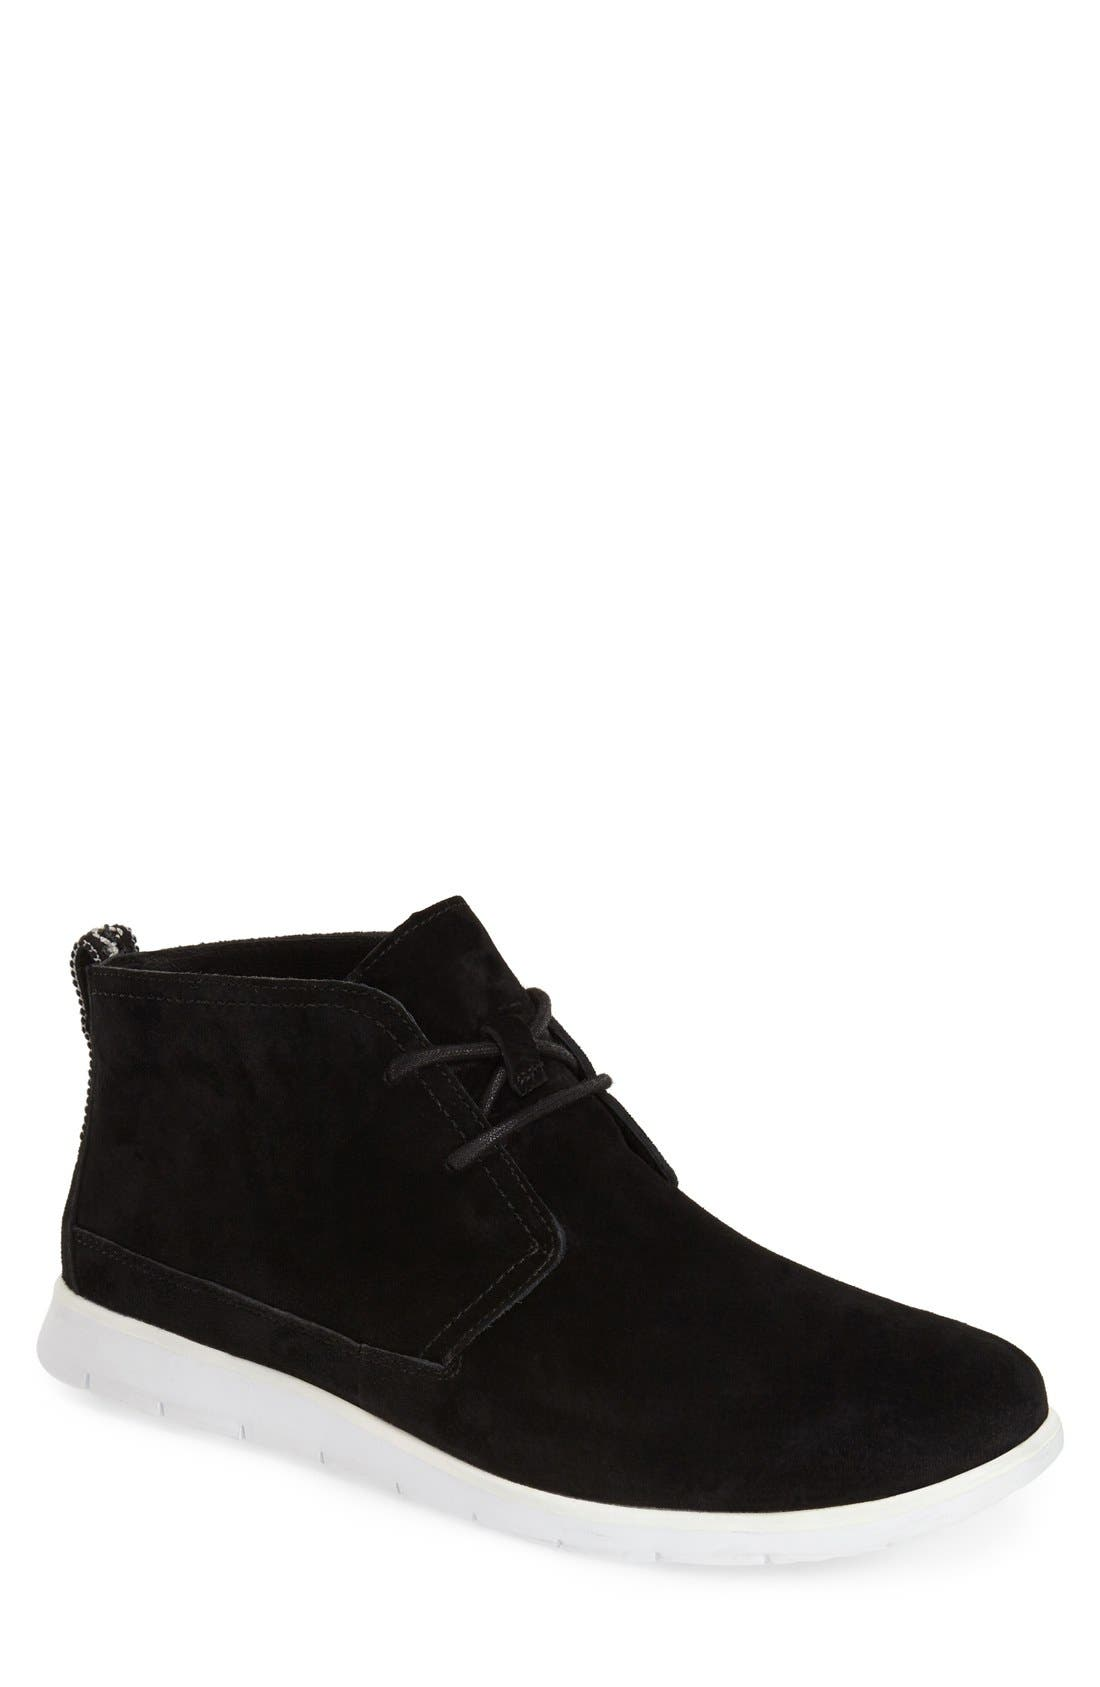 Freamon Suede Chukka Boot,                             Main thumbnail 1, color,                             Black